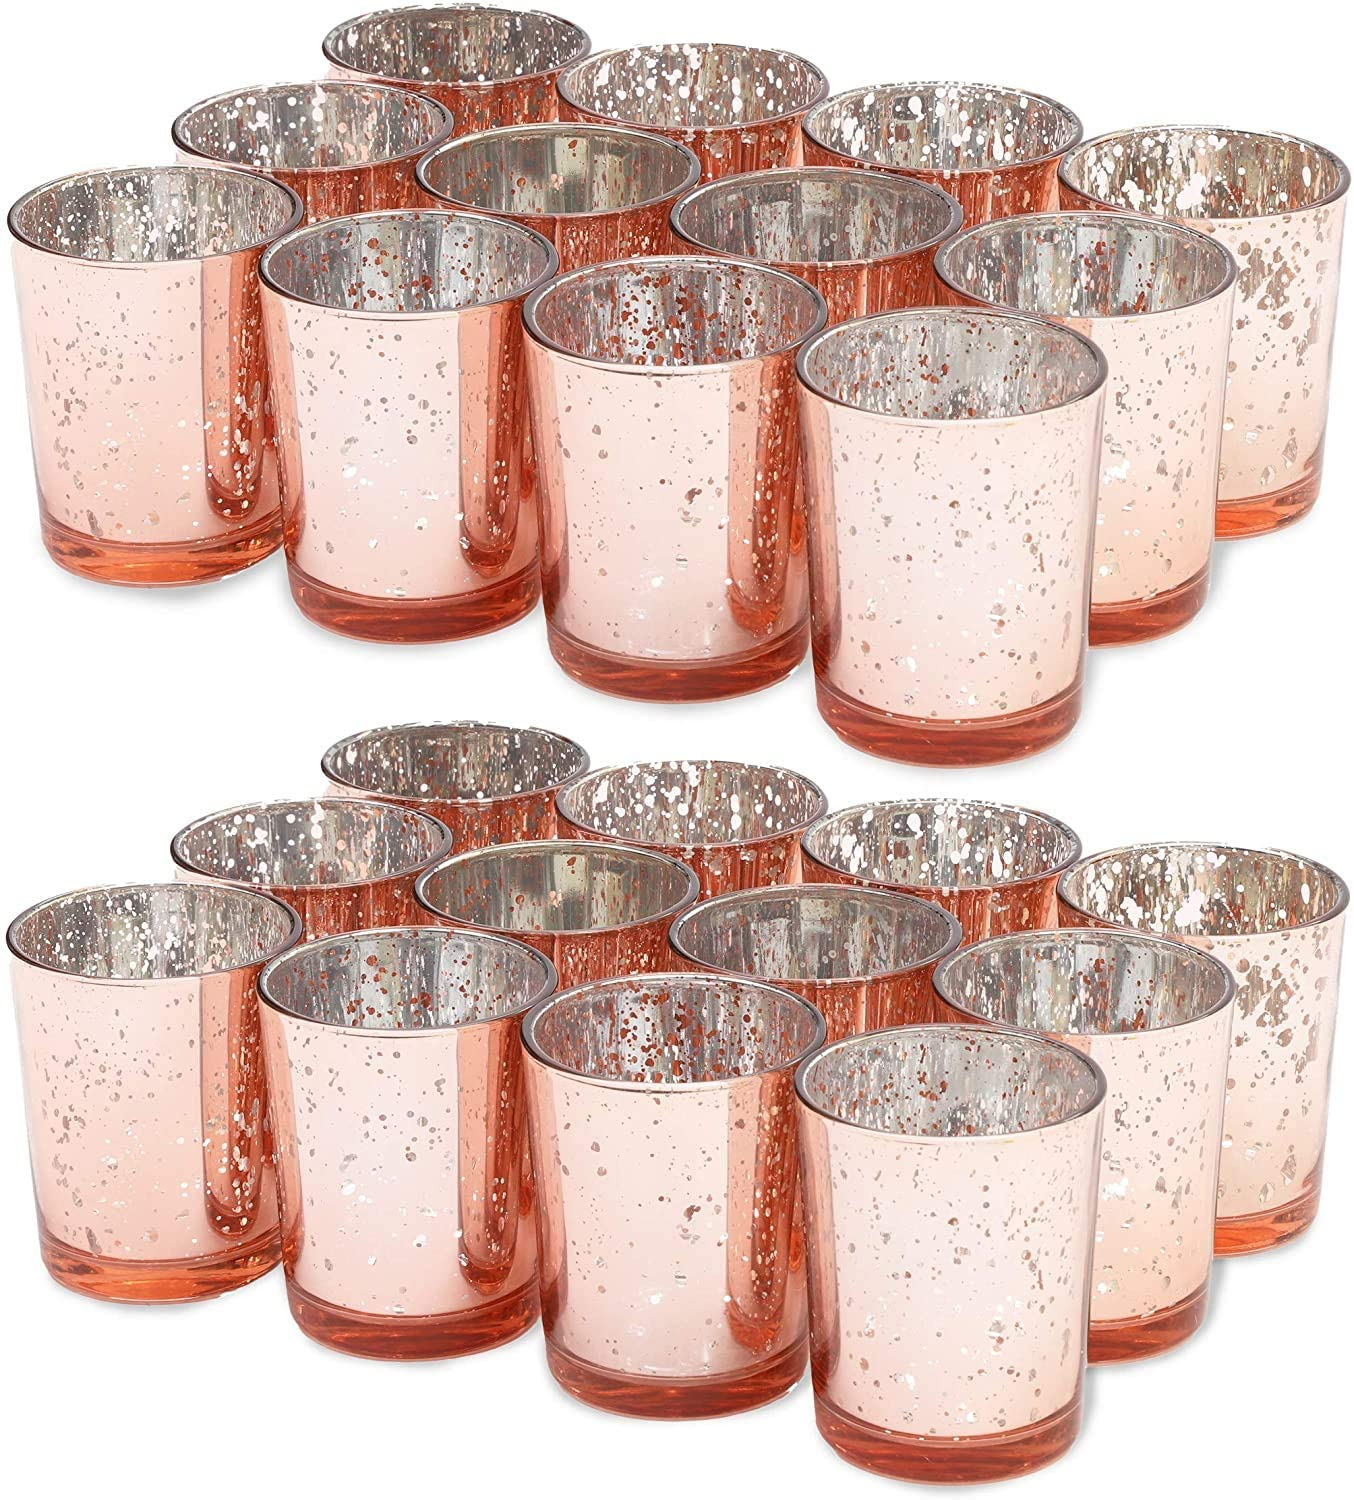 MICROSUN 24 Packs Mercury Pink Glass Tea Light Candle Holders, Speckled Tealight Candle Votives for Table Décor, Christmas Decorations, Wedding Centerpieces, Guest Gifts, 2.75 Inch (H)